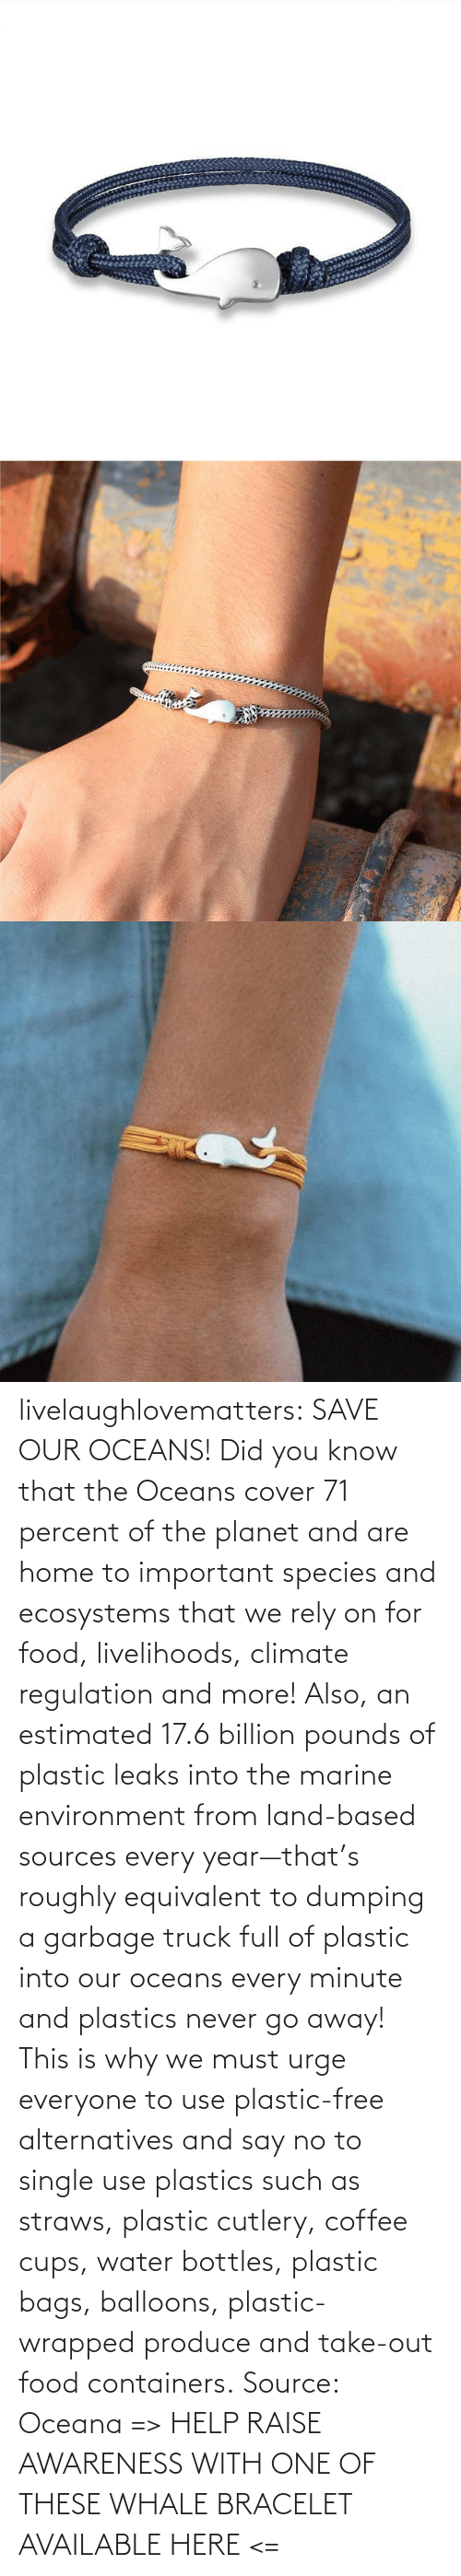 This Is Why: livelaughlovematters: SAVE OUR OCEANS!  Did you know that the Oceans cover 71 percent of the planet and are home to important species and ecosystems that we rely on for food, livelihoods, climate regulation and more! Also, an estimated 17.6 billion pounds of plastic leaks into the marine environment from land-based sources every year—that's roughly equivalent to dumping a garbage truck full of plastic into our oceans every minute and plastics never go away! This is why we must urge everyone to use plastic-free alternatives and say no to single use plastics such as straws, plastic cutlery, coffee cups, water bottles, plastic bags, balloons, plastic-wrapped produce and take-out food containers. Source: Oceana => HELP RAISE AWARENESS WITH ONE OF THESE WHALE BRACELET AVAILABLE HERE <=